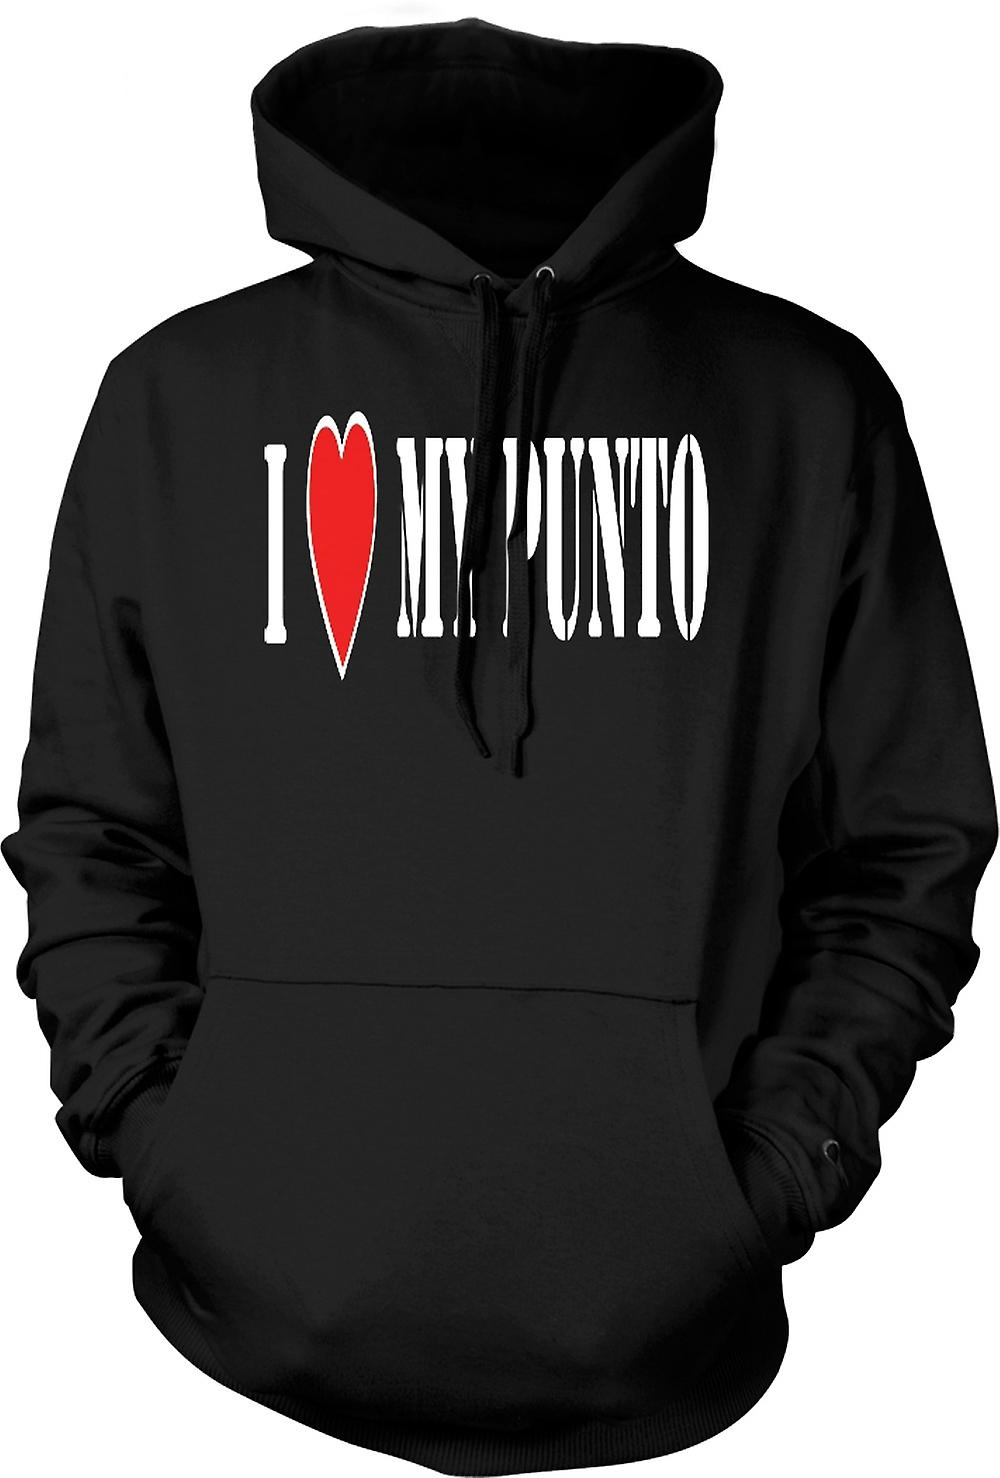 Mens Hoodie - I LoveMy Punto - Fun - Fiat Car